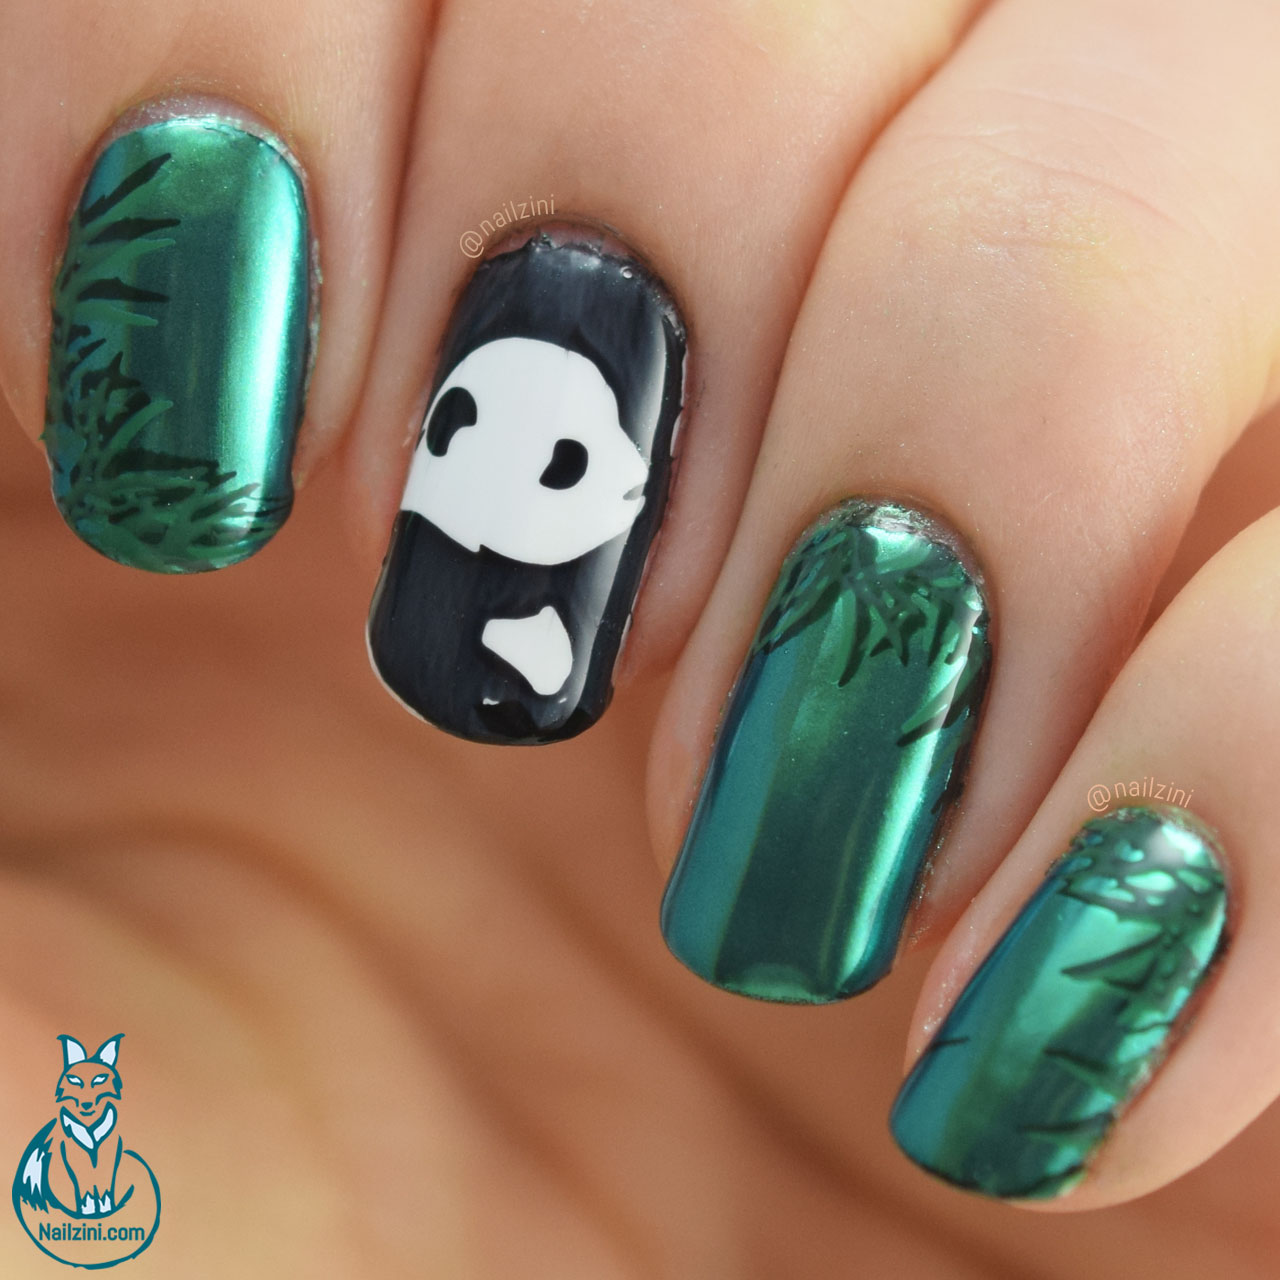 Panda Mirror Nail Art without gel Nailzini